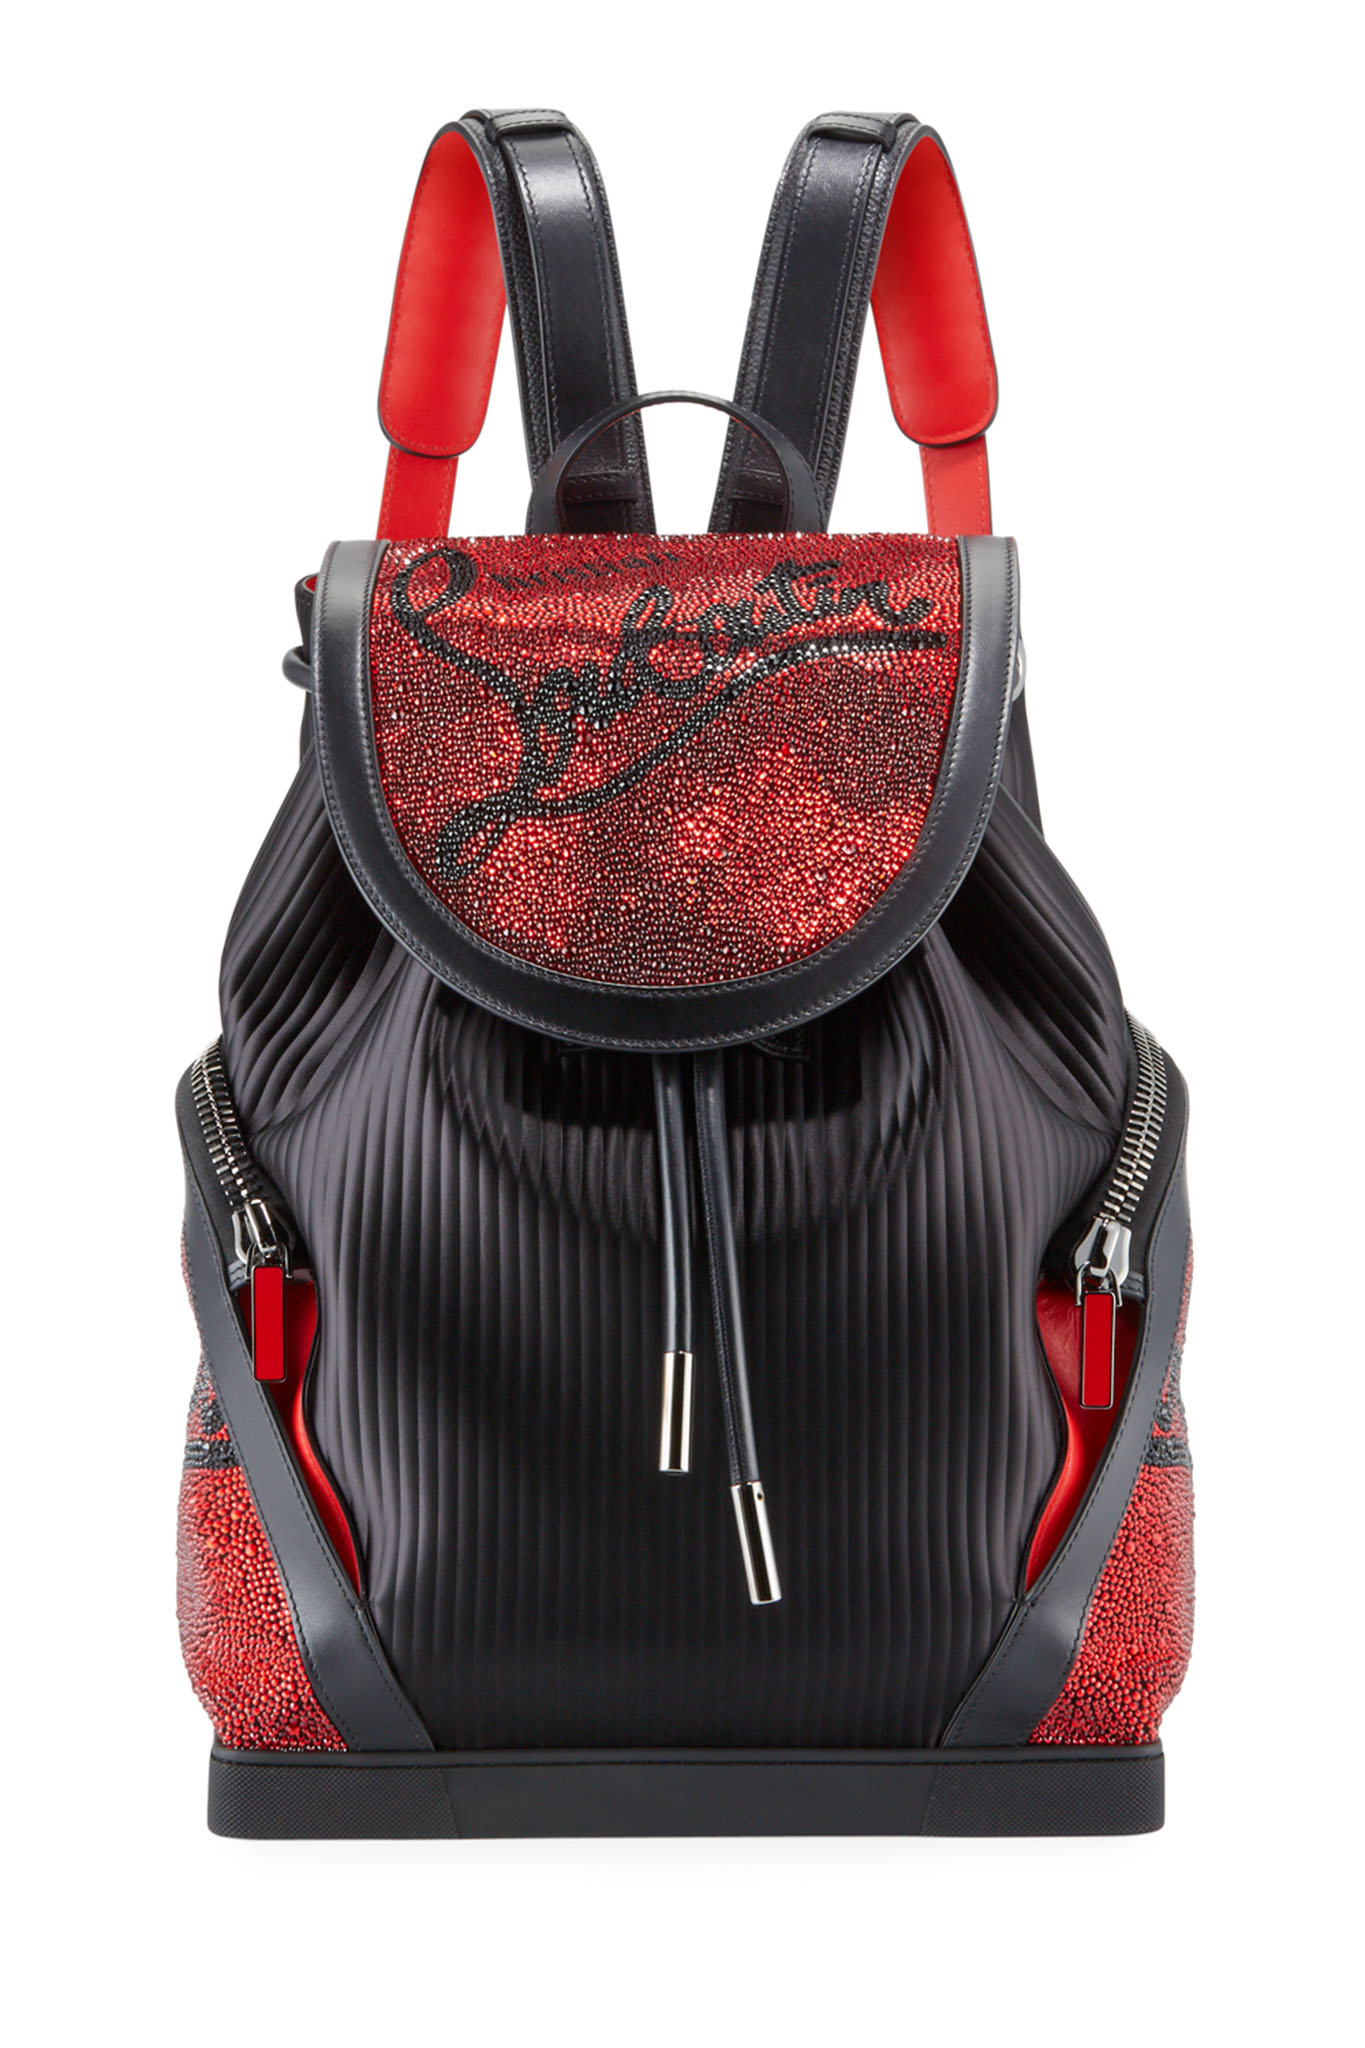 A Christian Louboutin backpack.